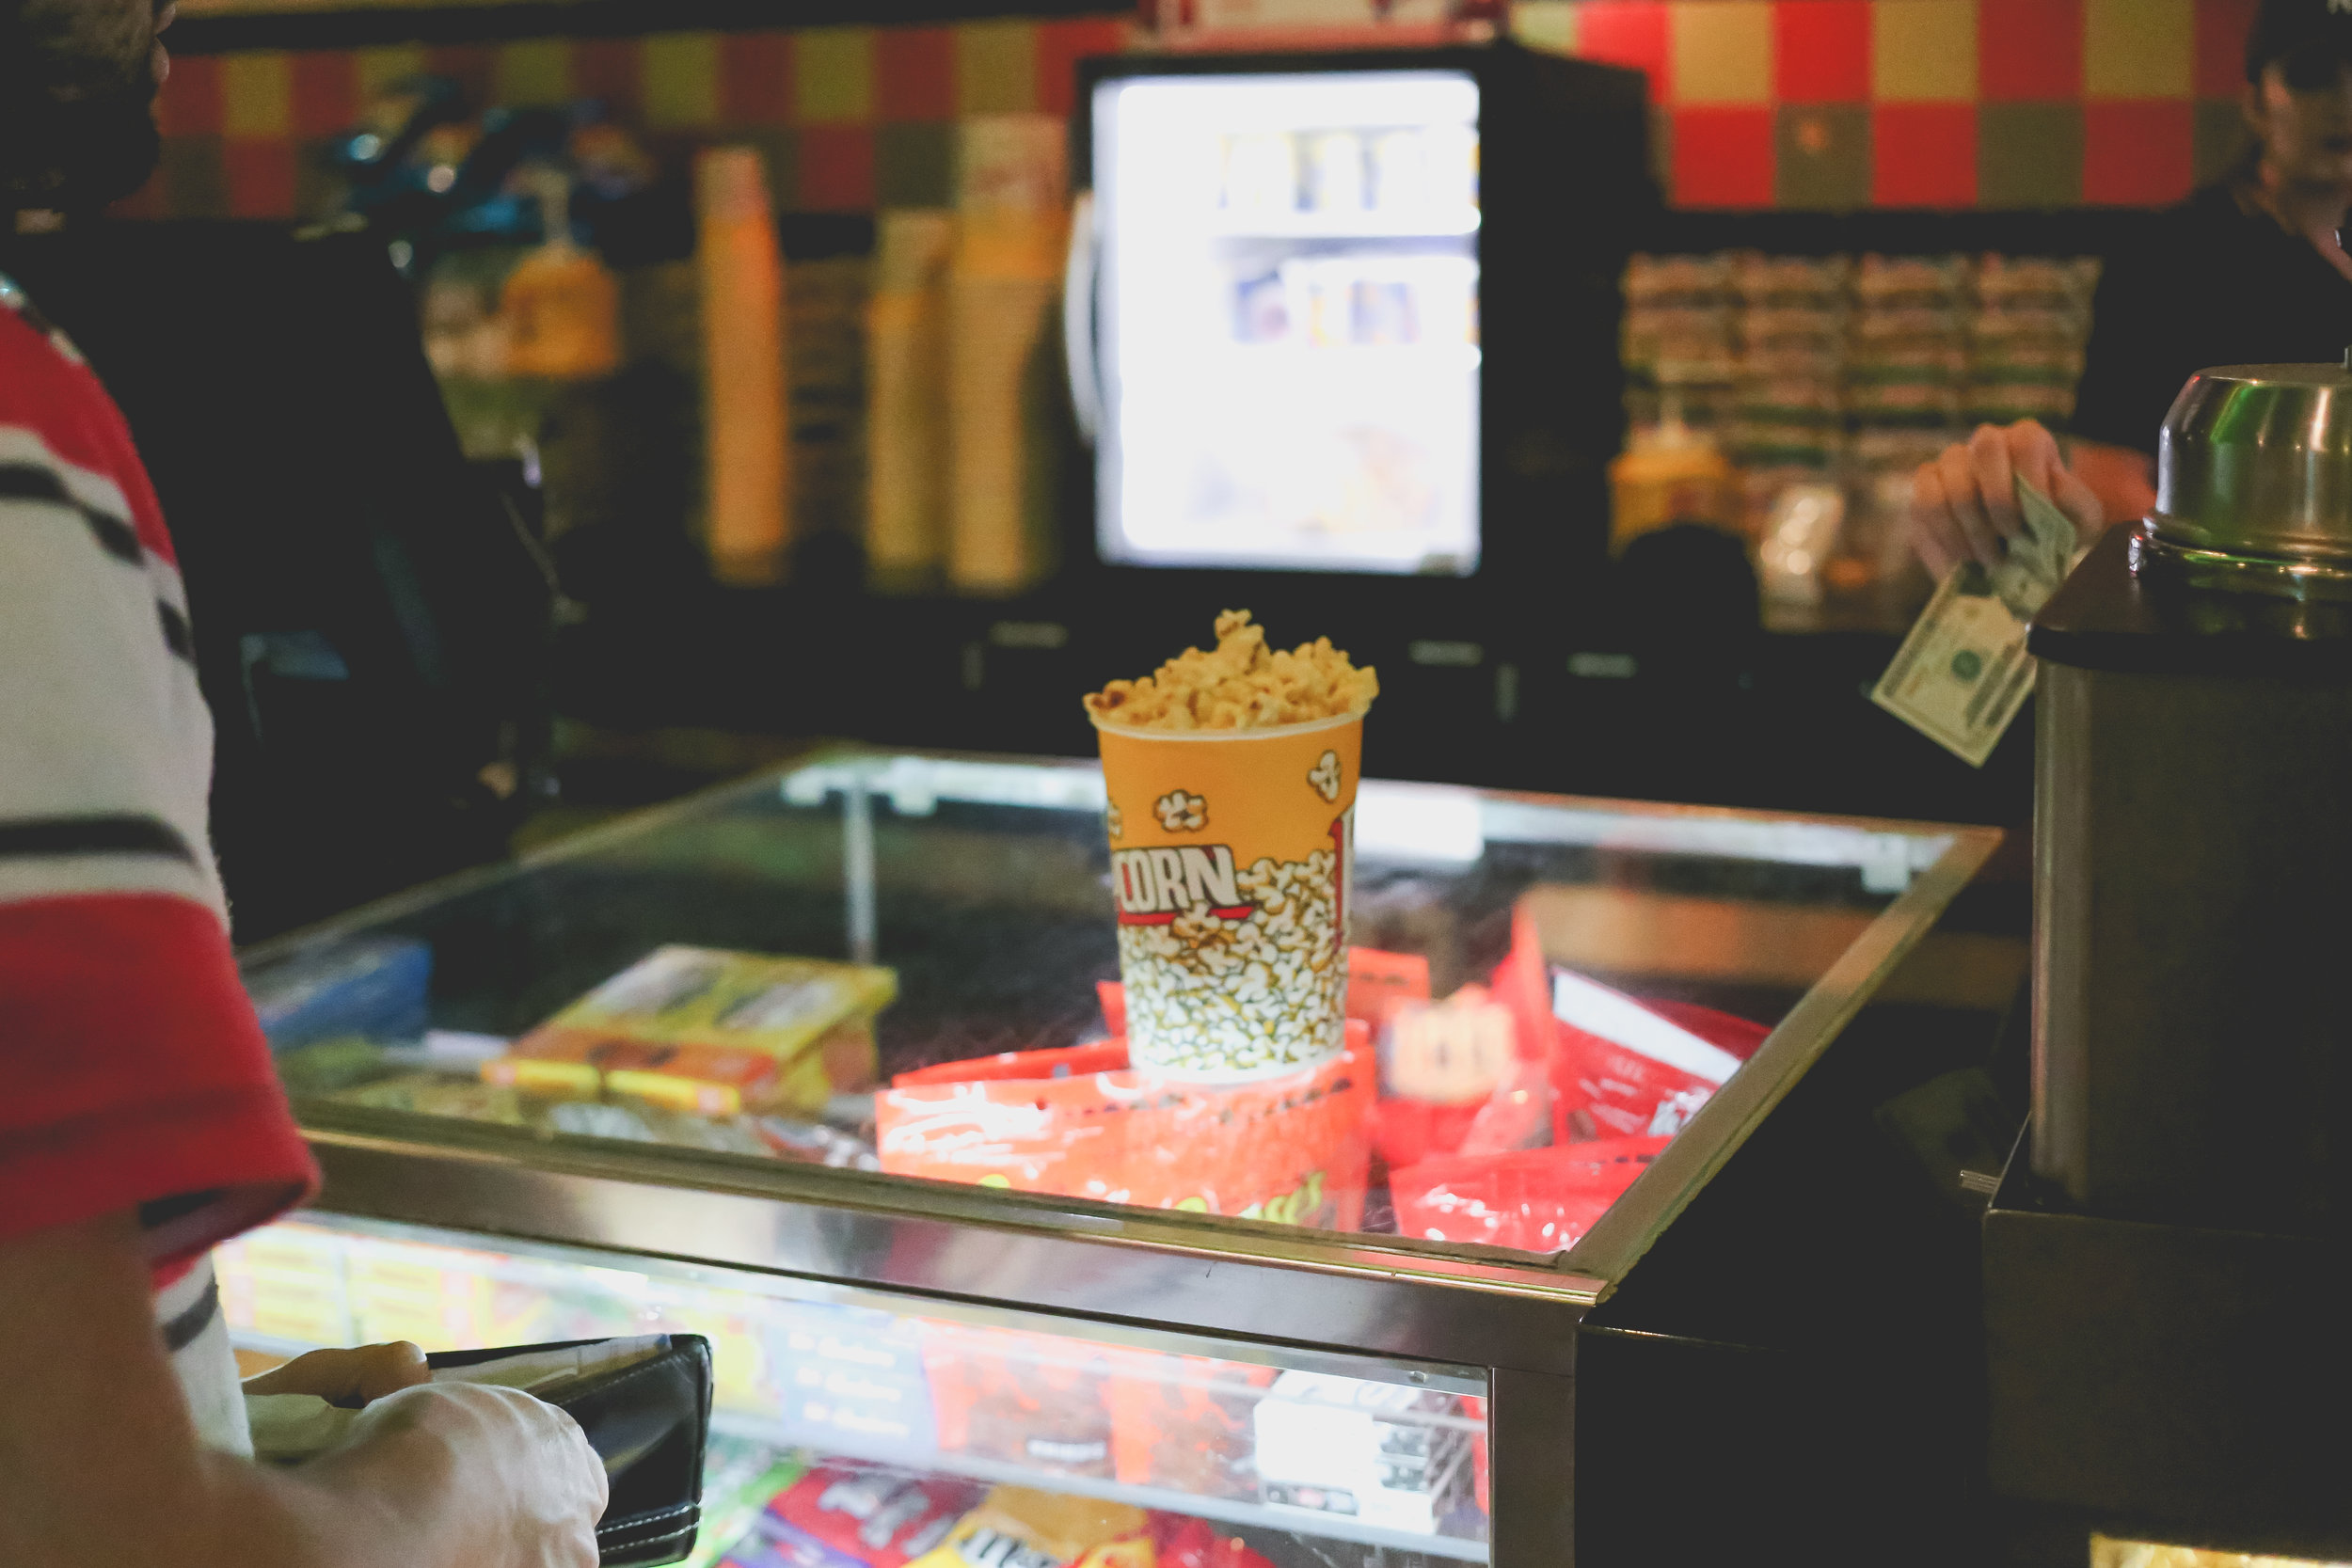 Buying popcorn at The Atrium movie theater in Staten Island, NY. Family Photojournalism.